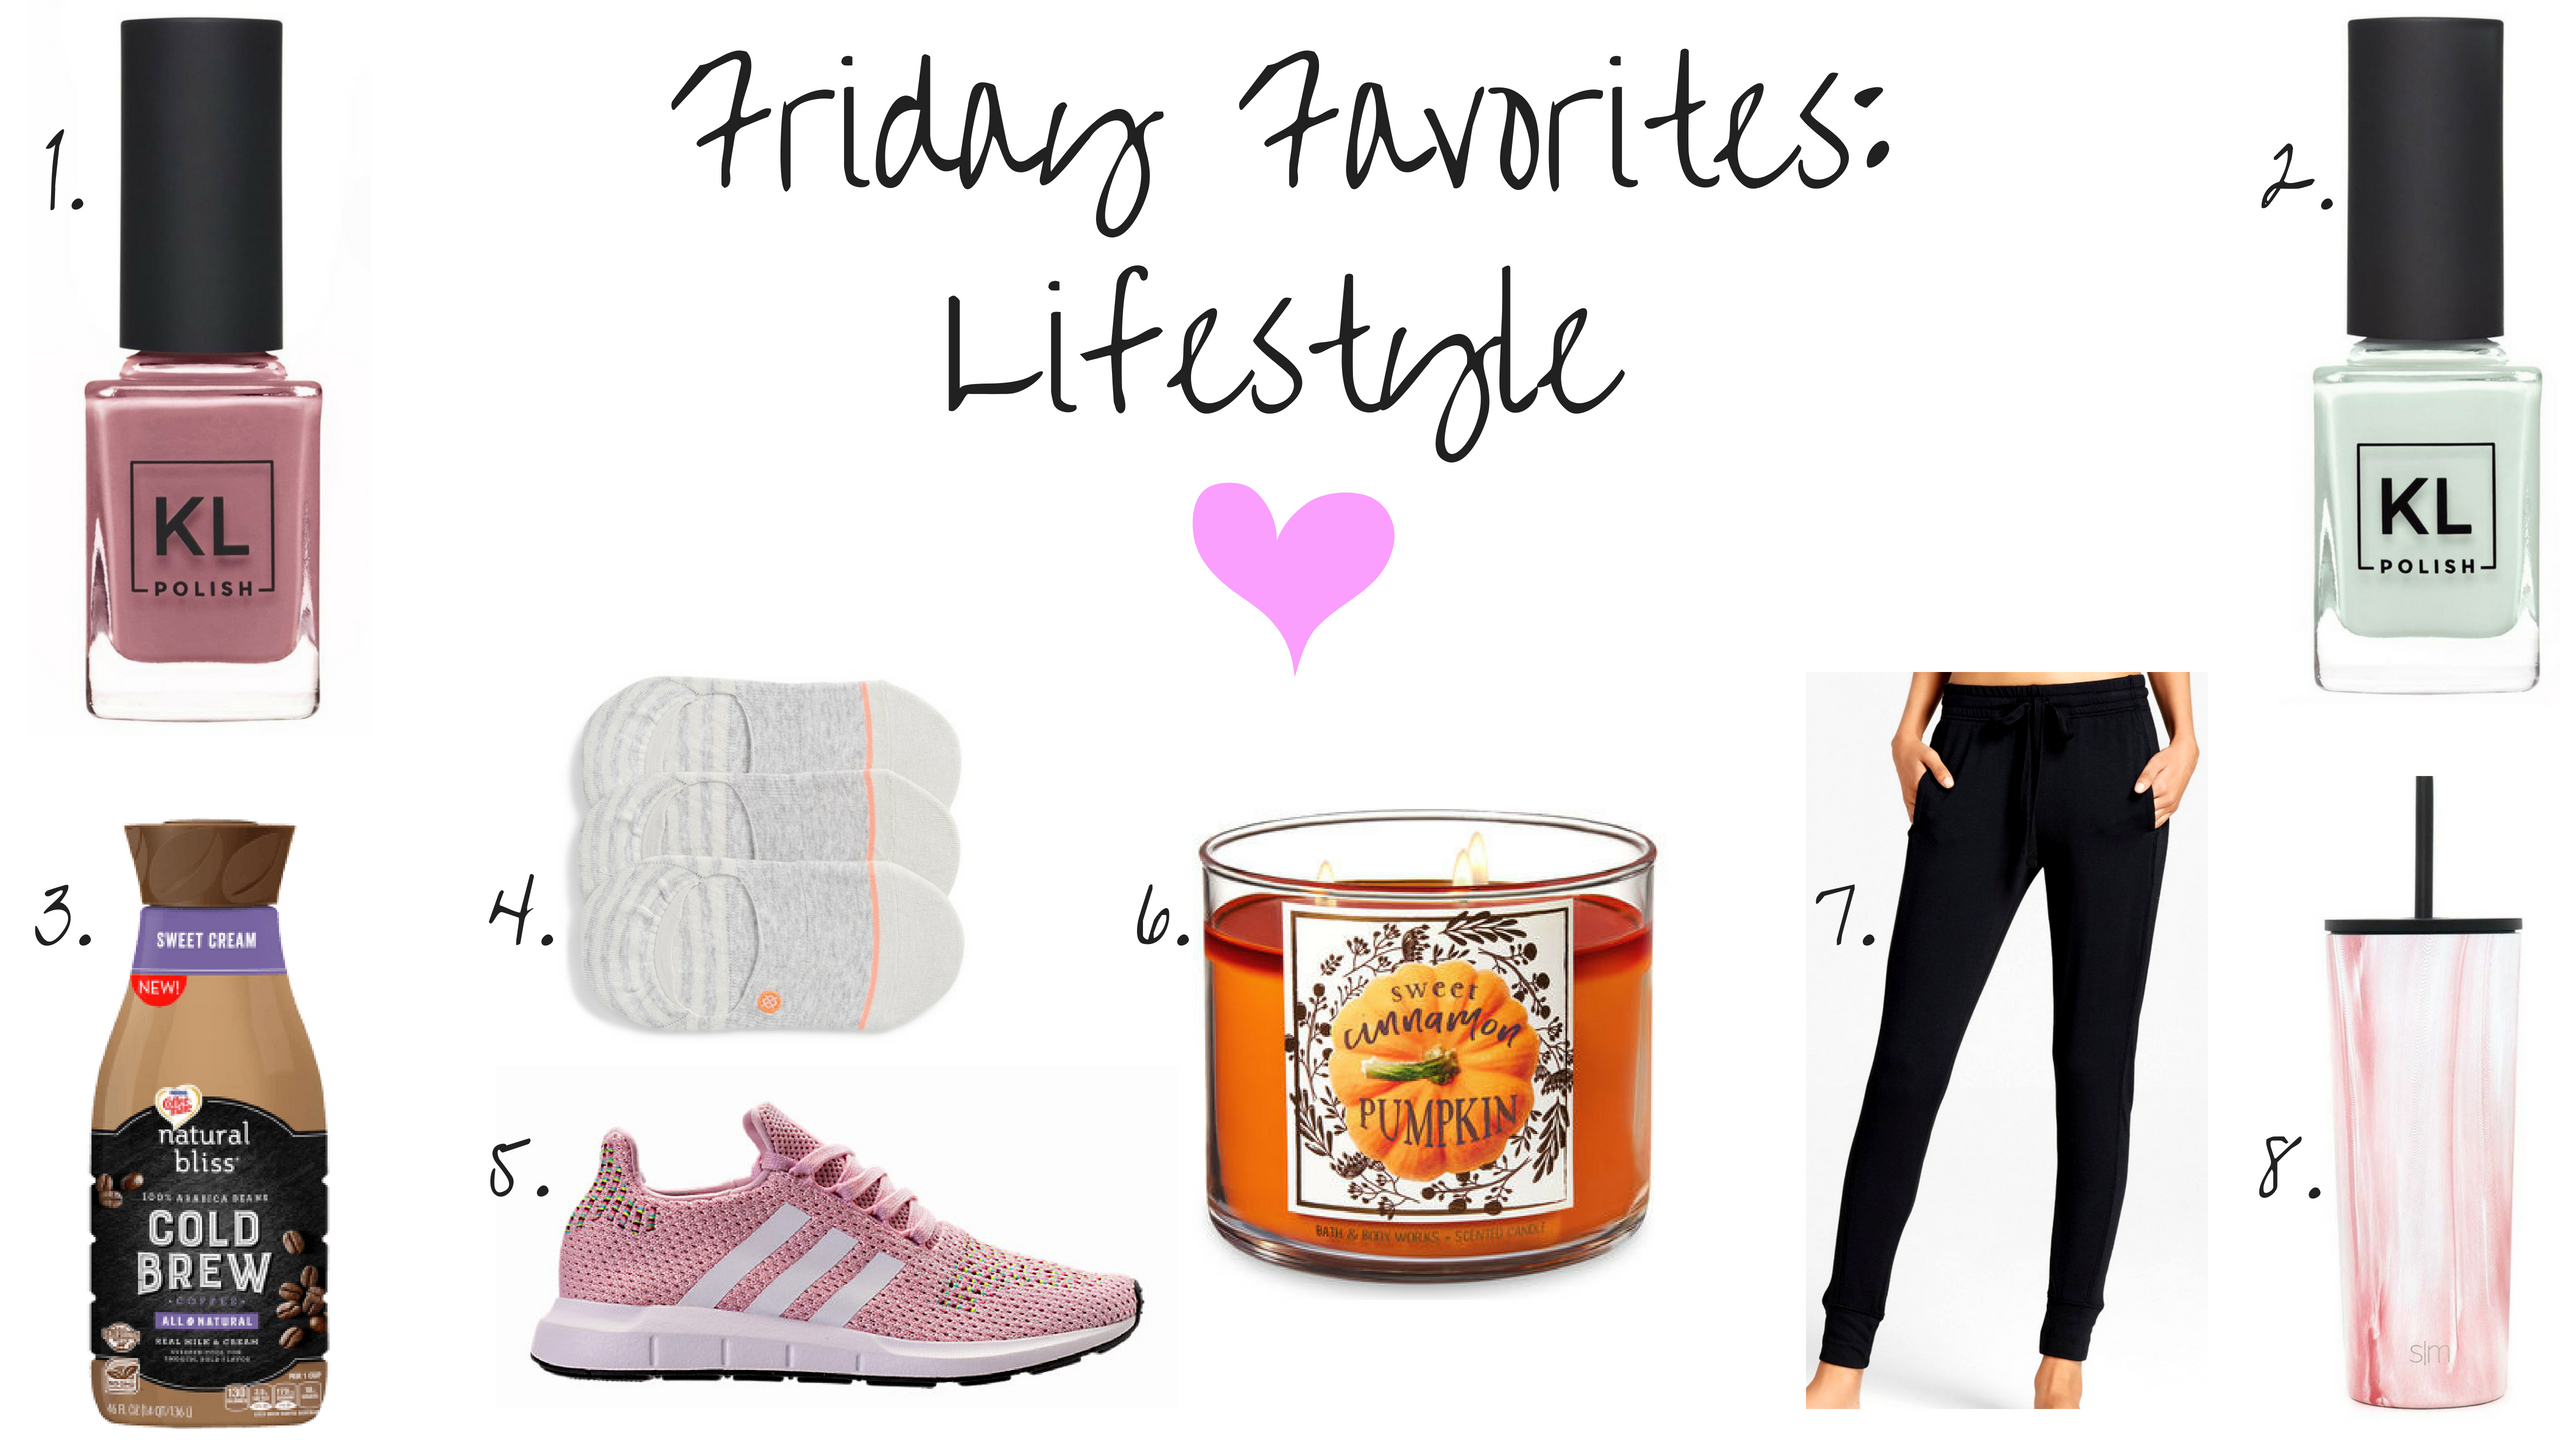 FRIDAY FAVORITES & HATE ITS